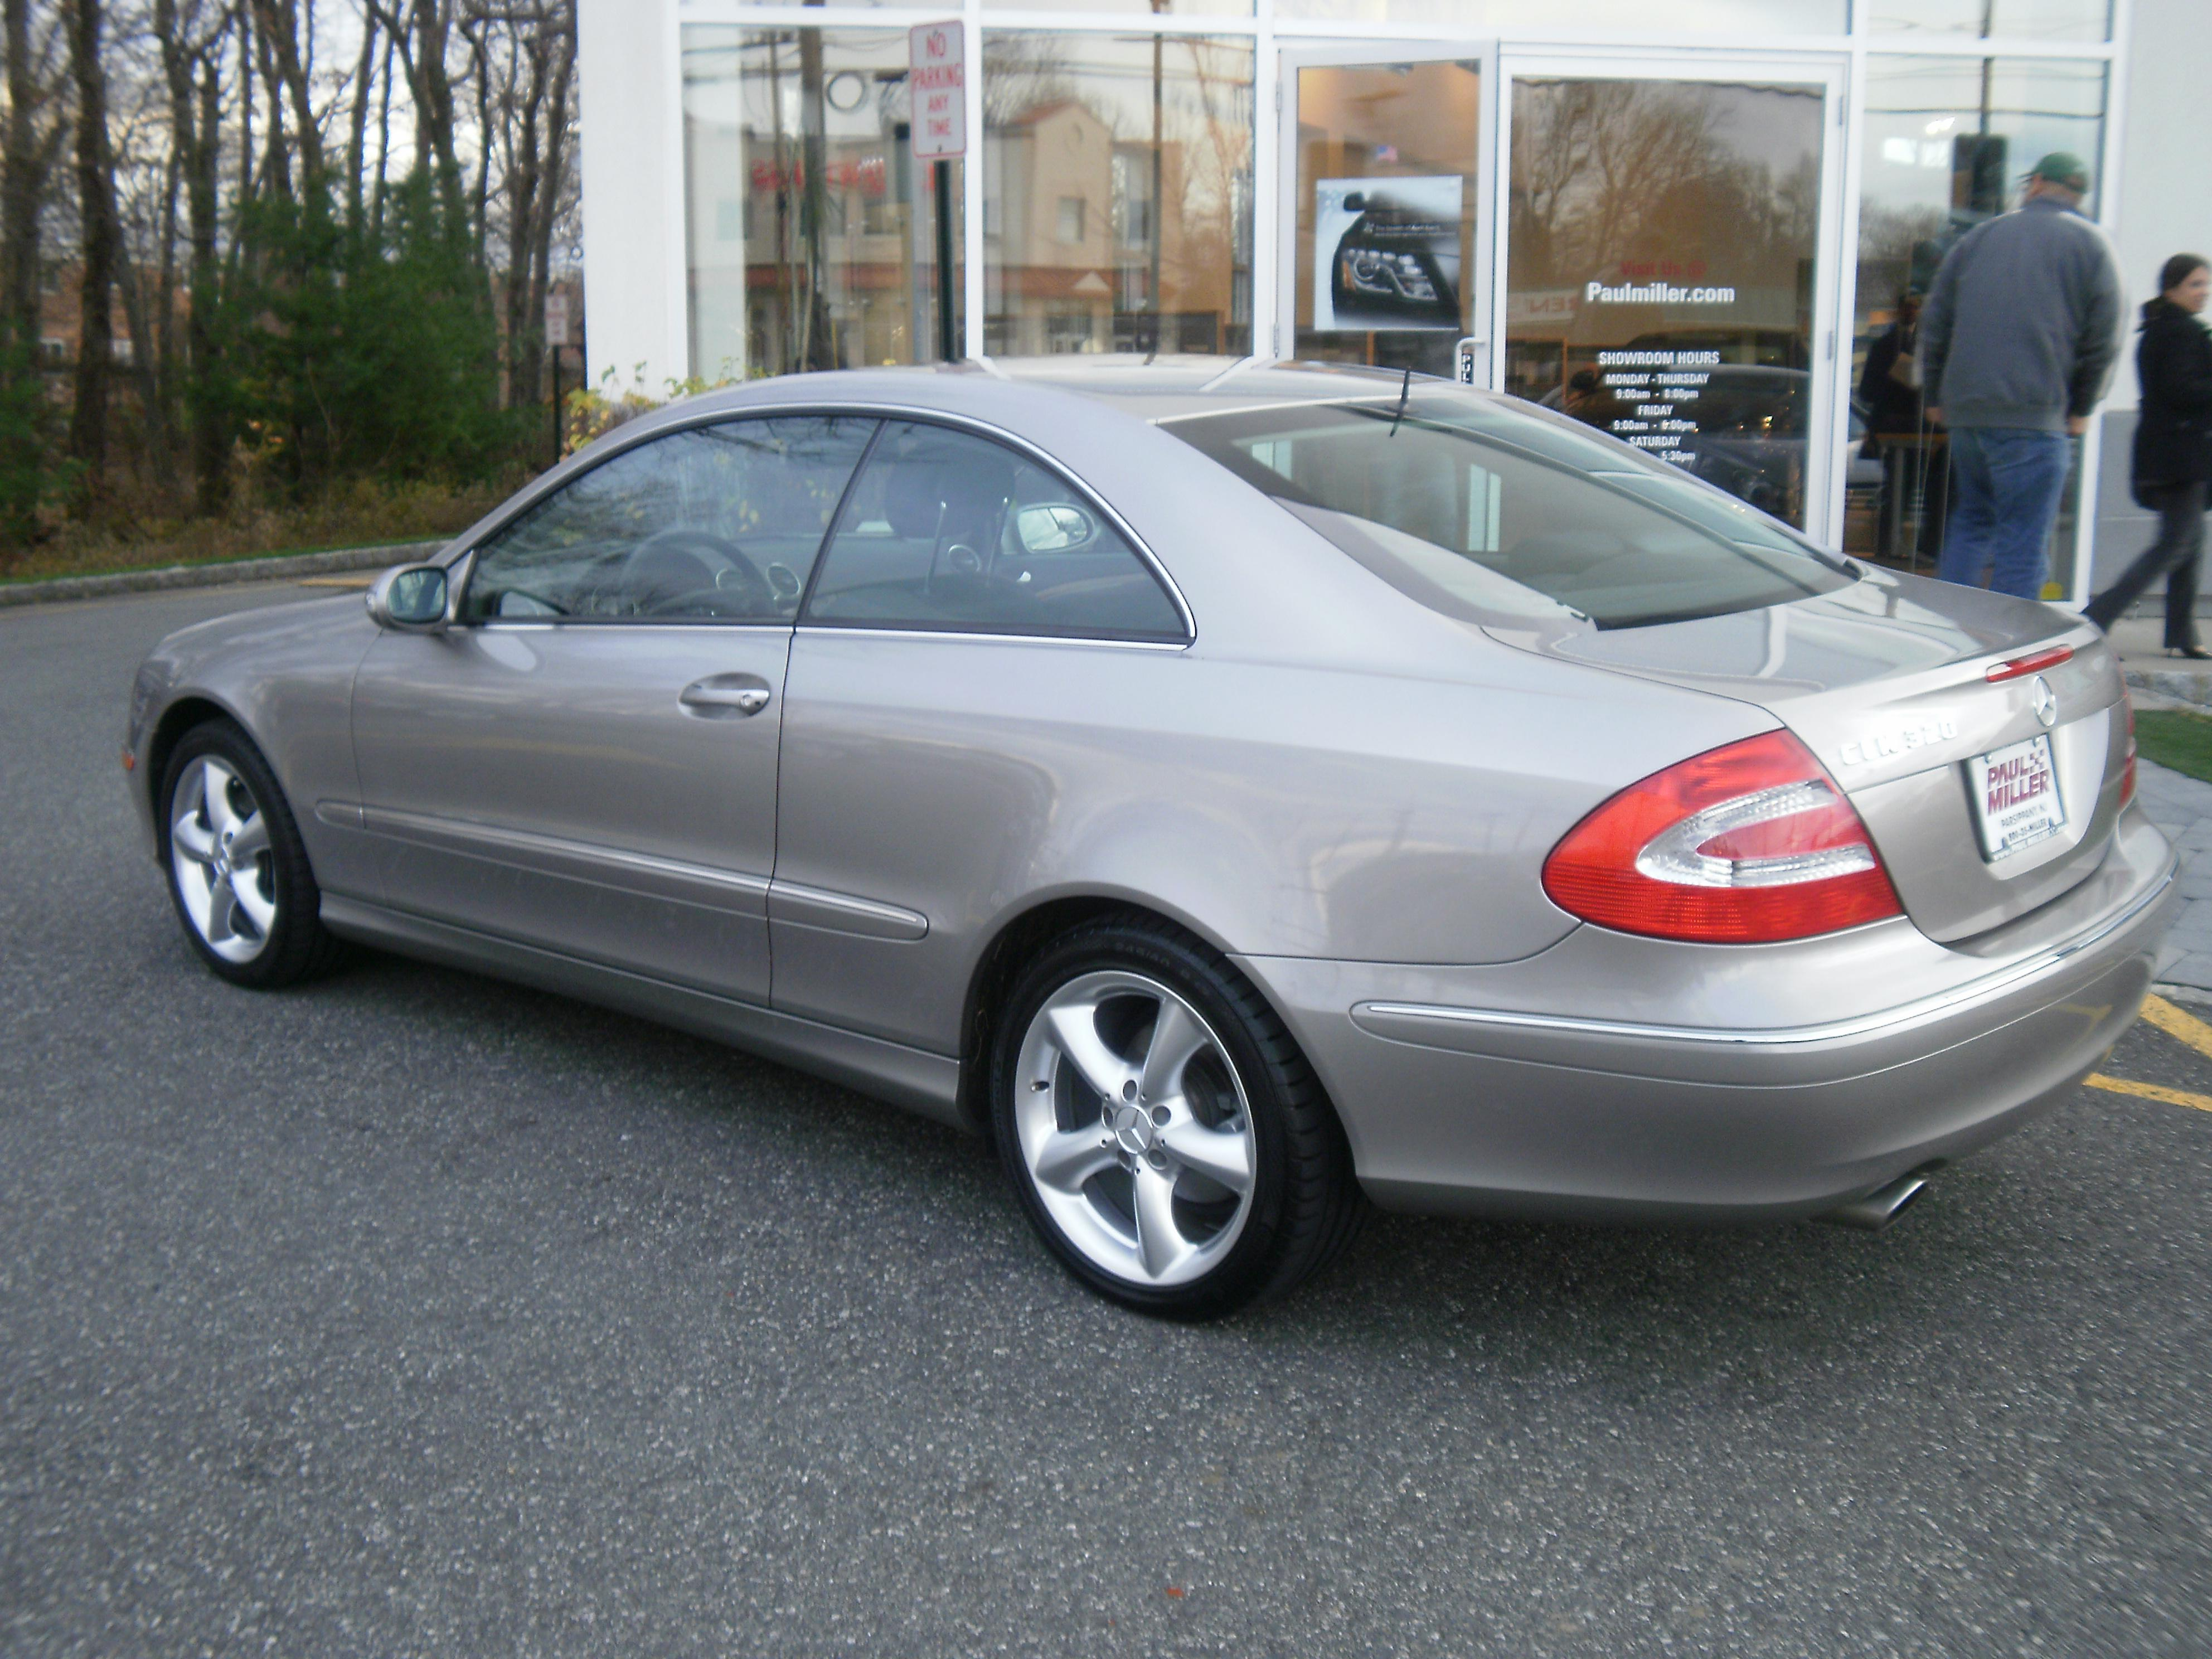 Speedyclk 39 s 2005 mercedes benz clk class in morris county nj for Mercedes benz clk 2005